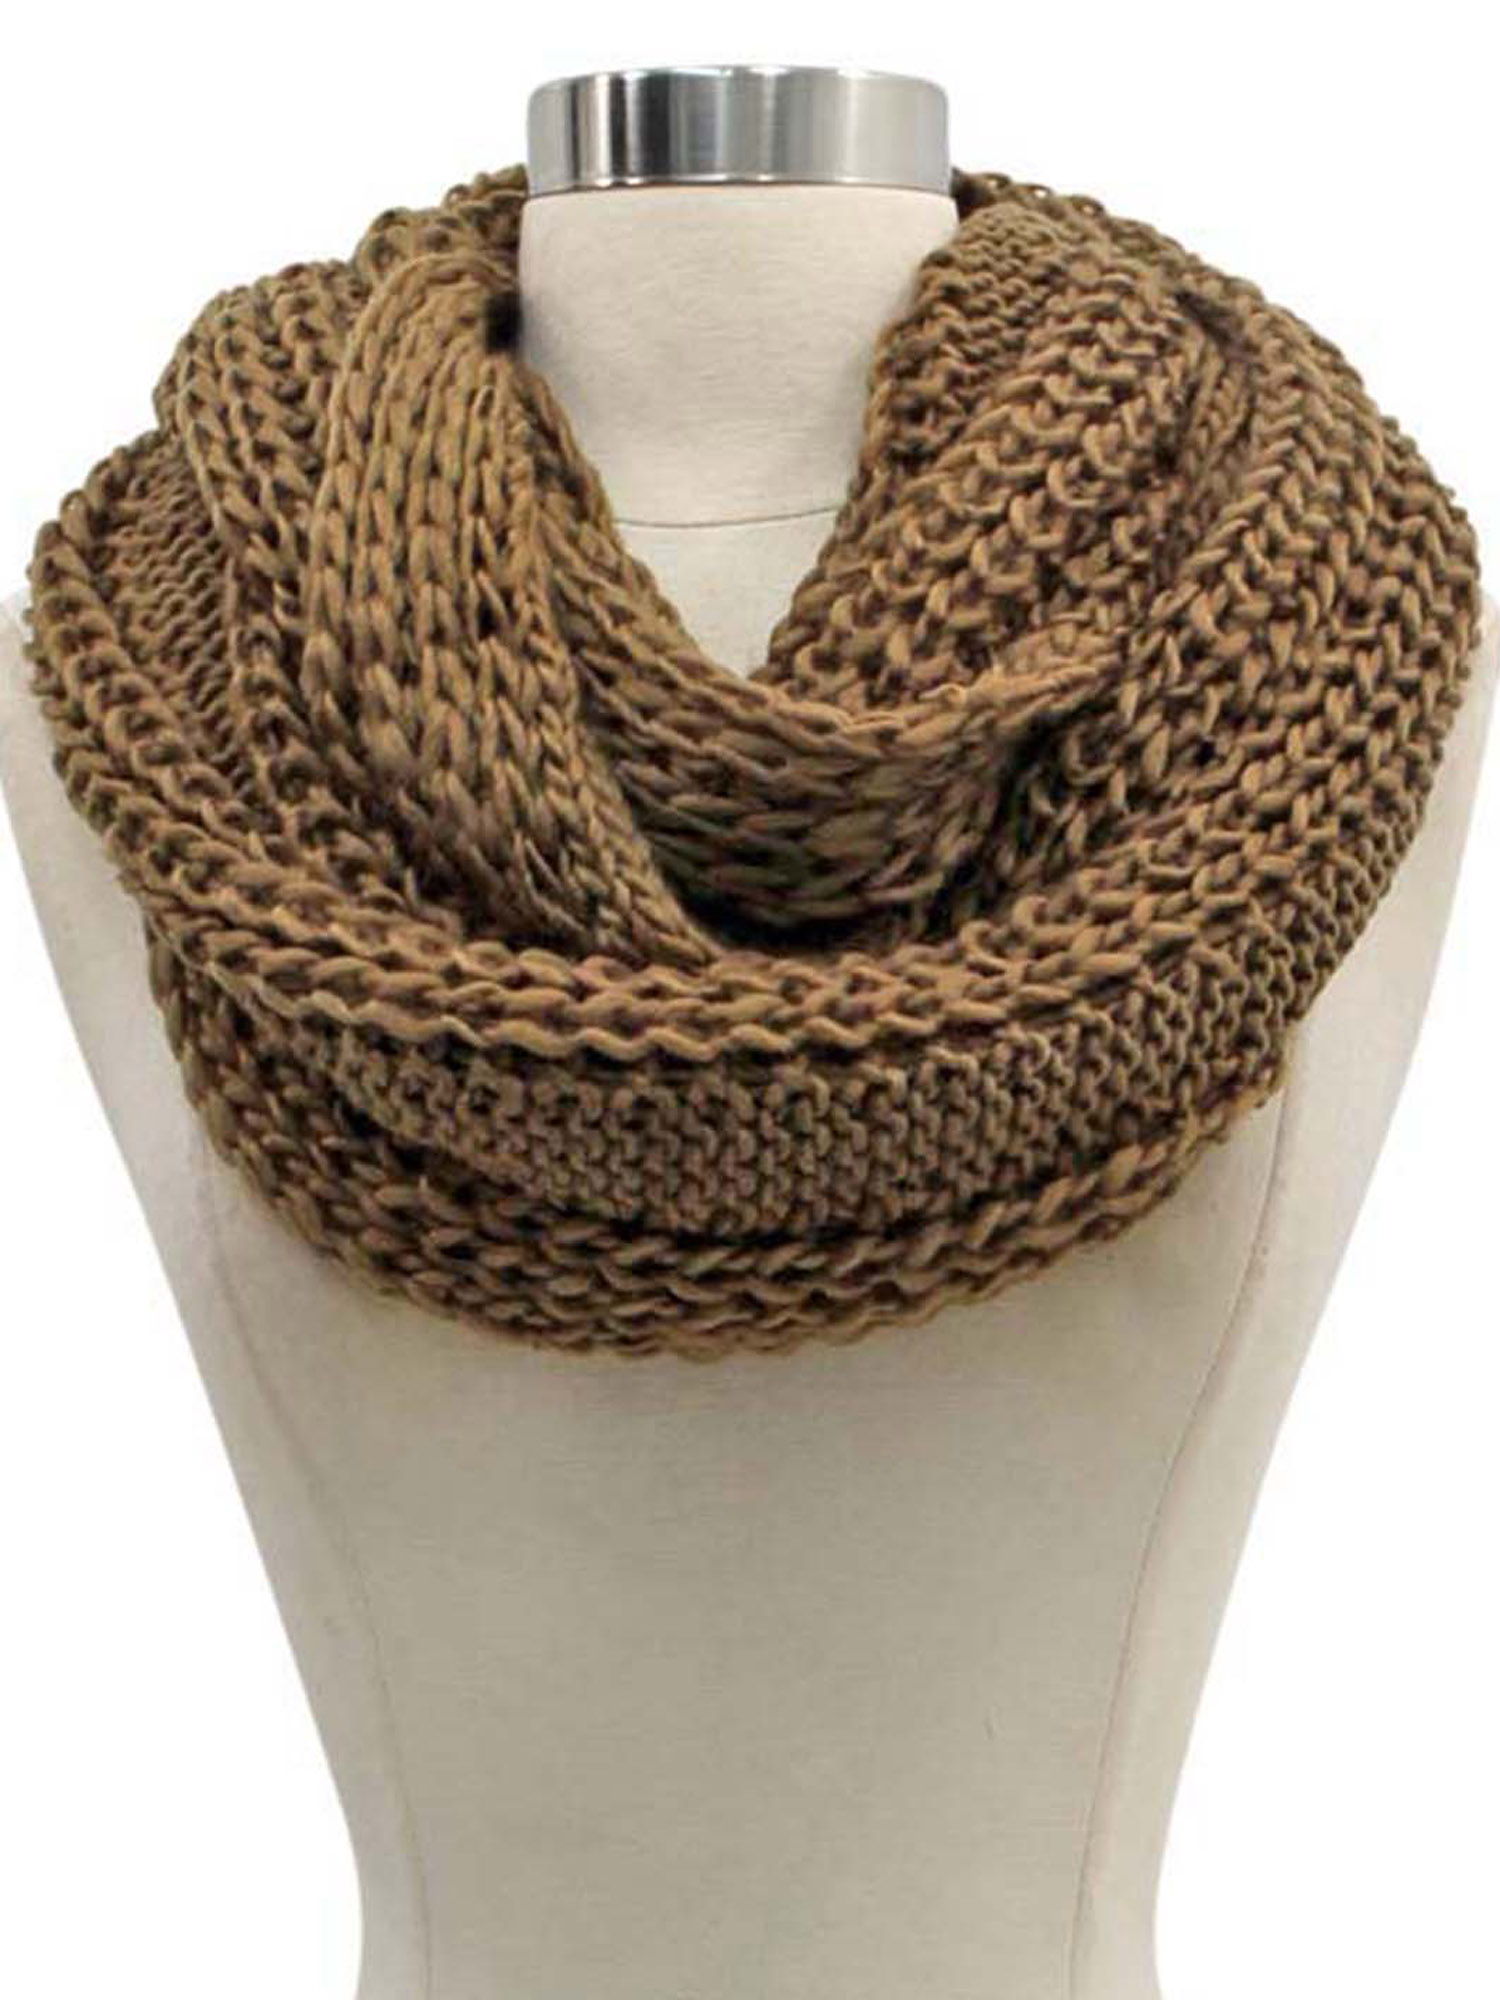 SIMPLE CHUNKY KNIT UNISEX WINTER INFINITY SCARF | eBay